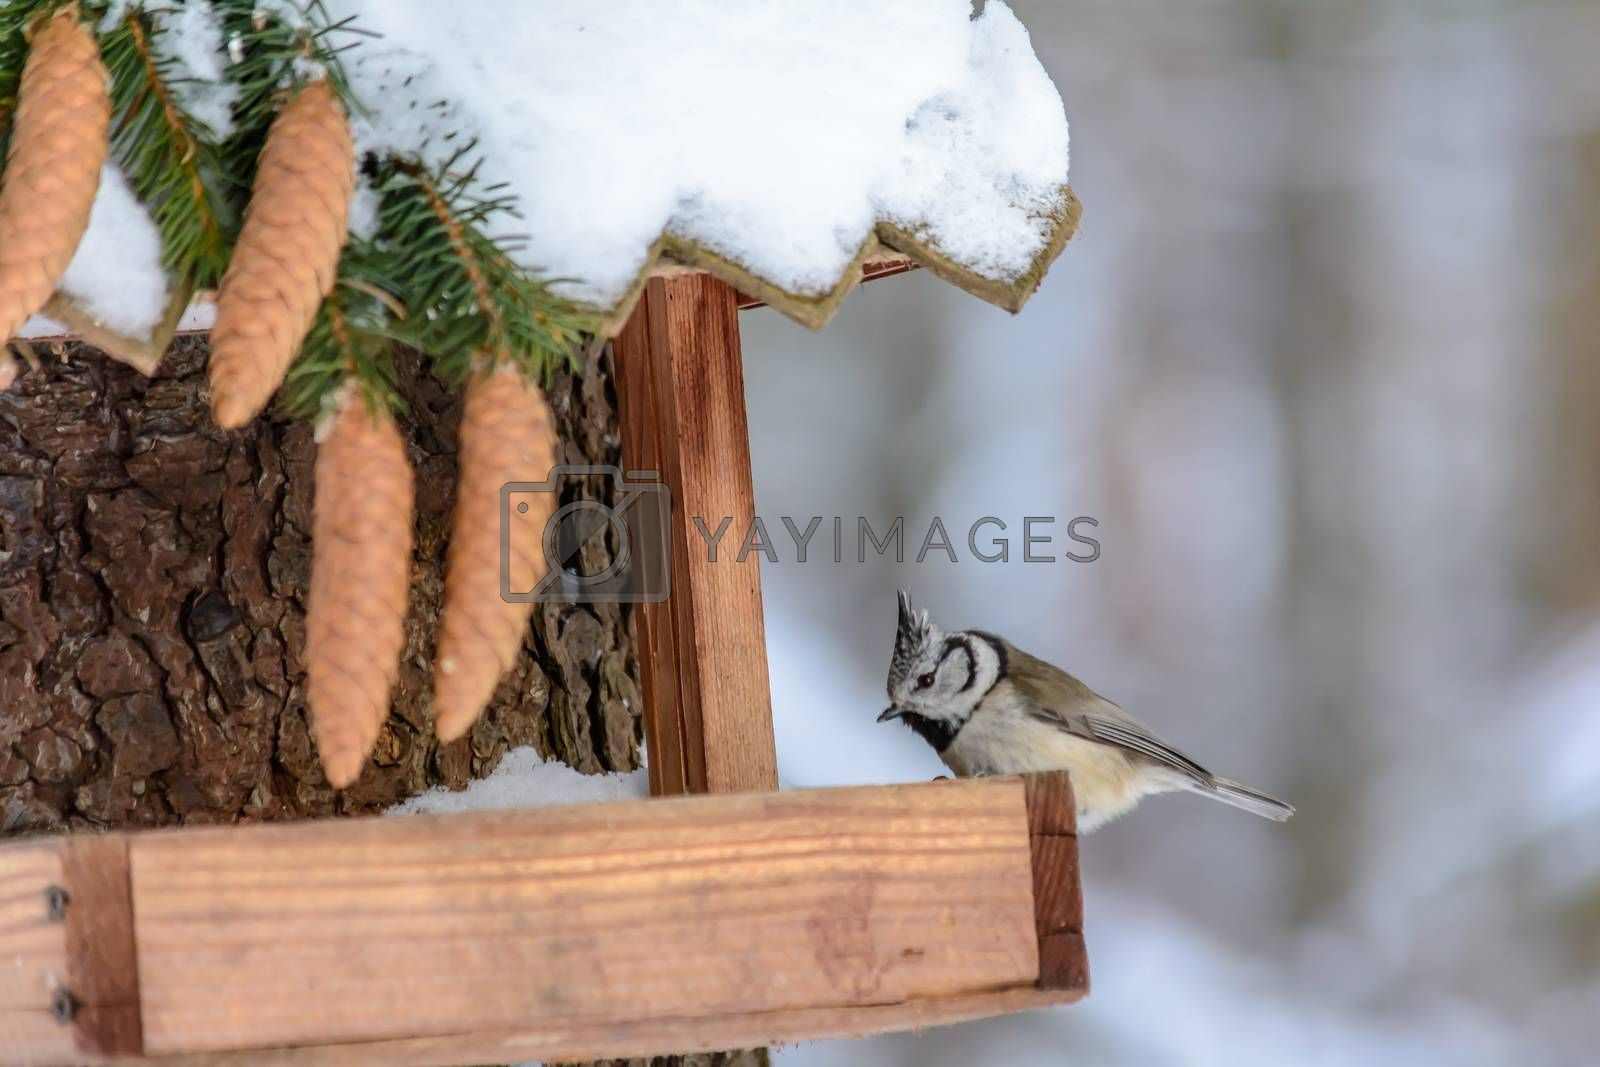 Forest birds live near the feeders in winter by KarimT